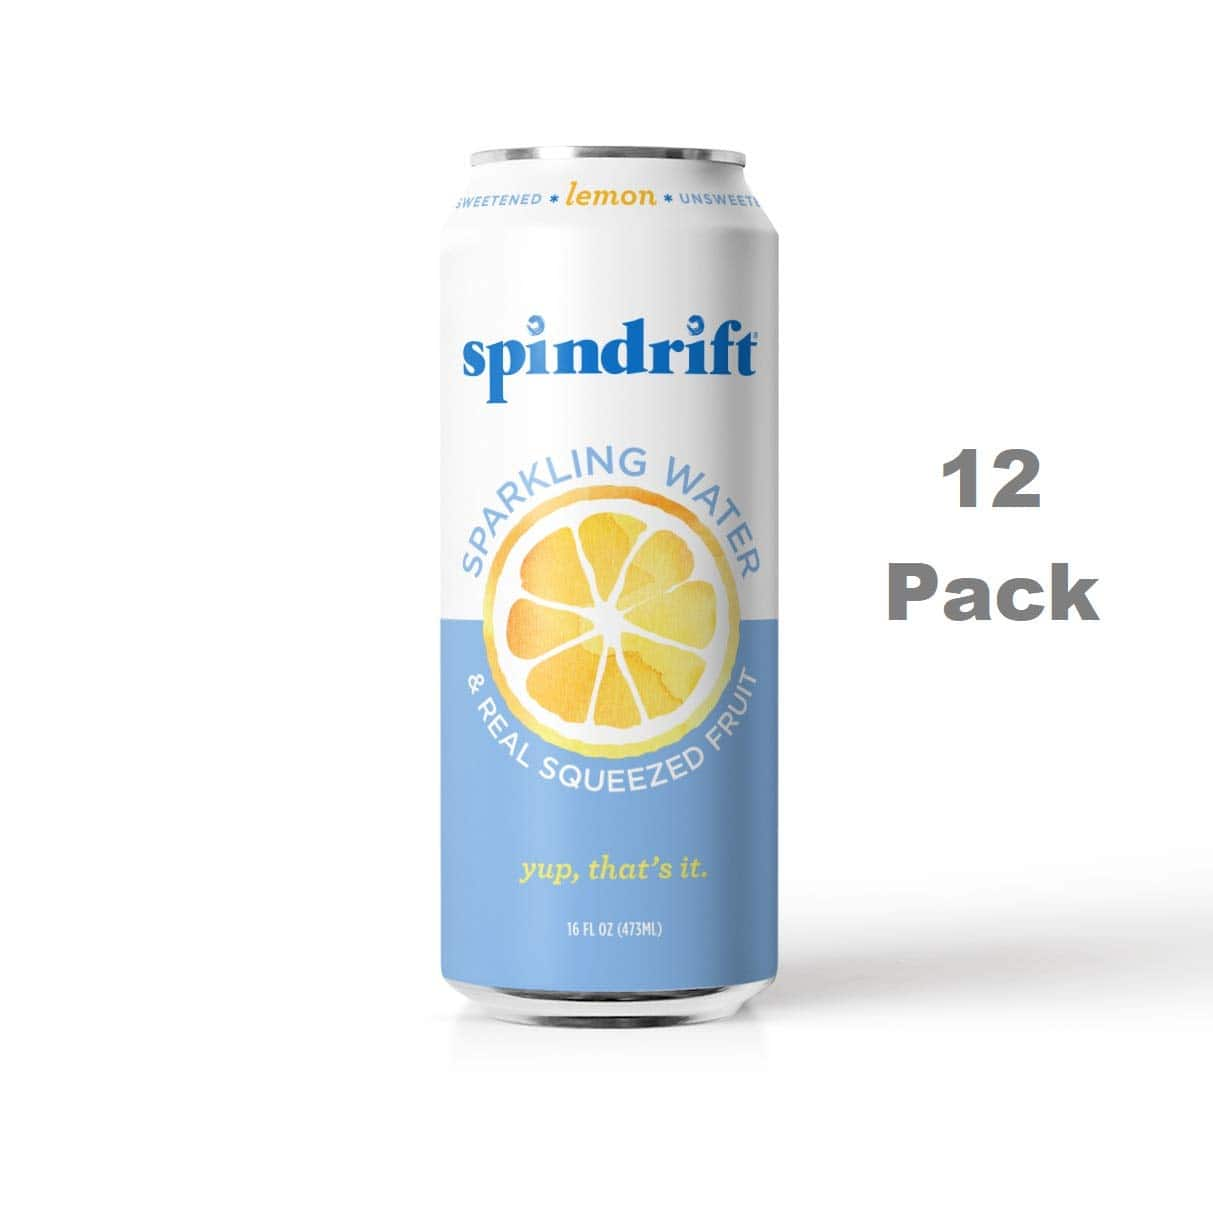 12-Pack 16-Oz. Spindrift Sparkling Water, Lemon Flavor $5.96 or less w/ S&S + free s/h